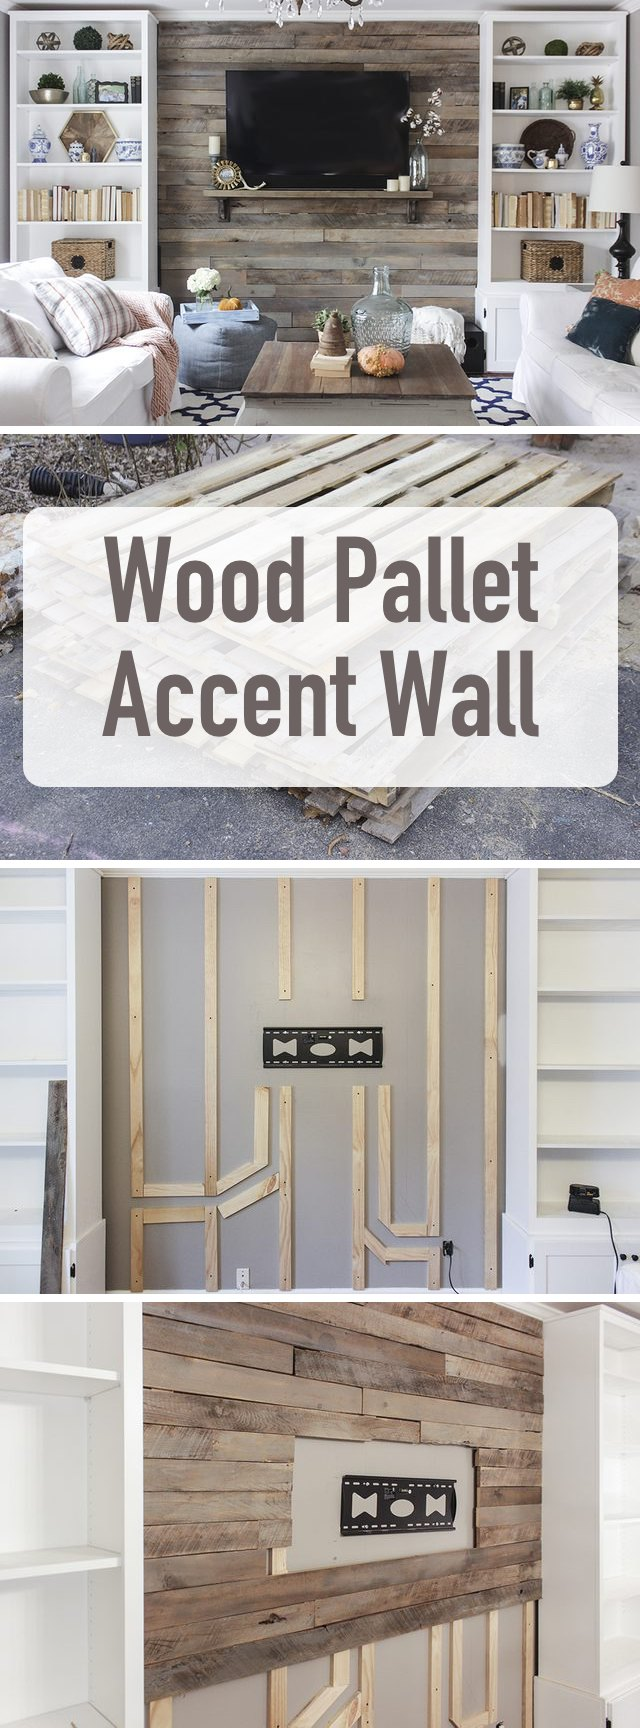 Create a Wood Pallet Accent Wall 15